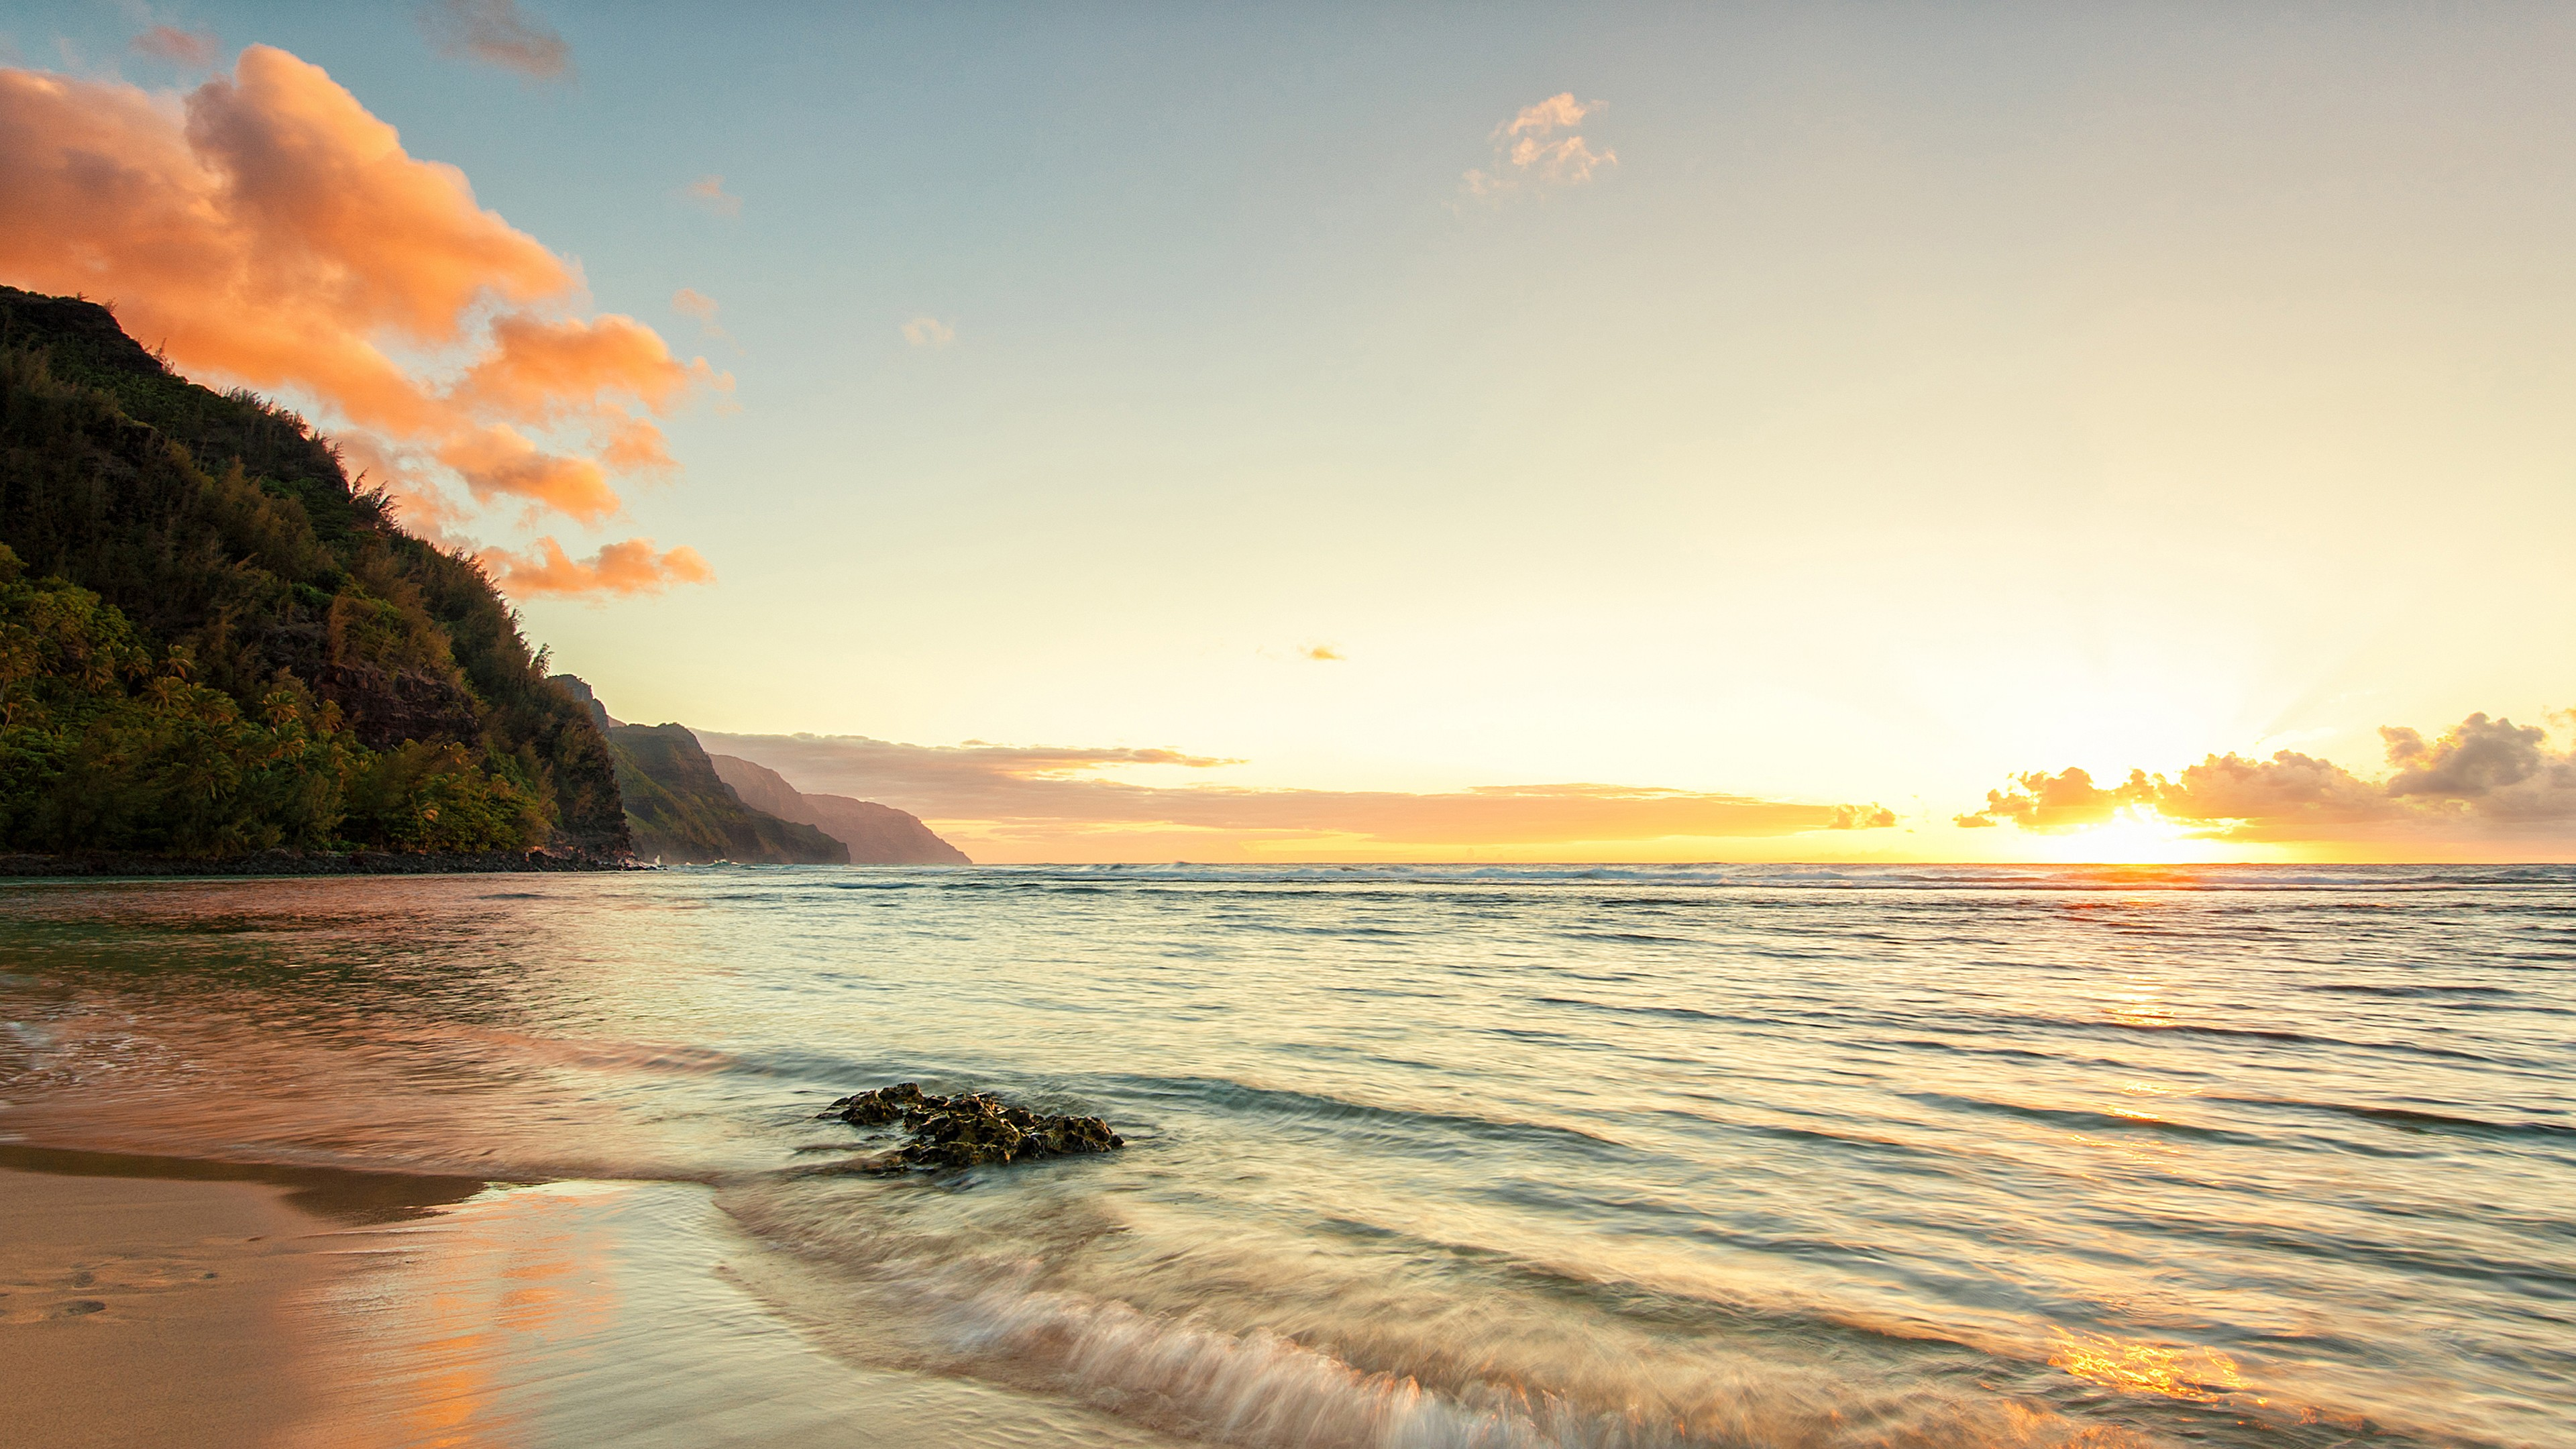 Wallpaper Hawaii 4k HD Kee Beach Island Kauai Sky